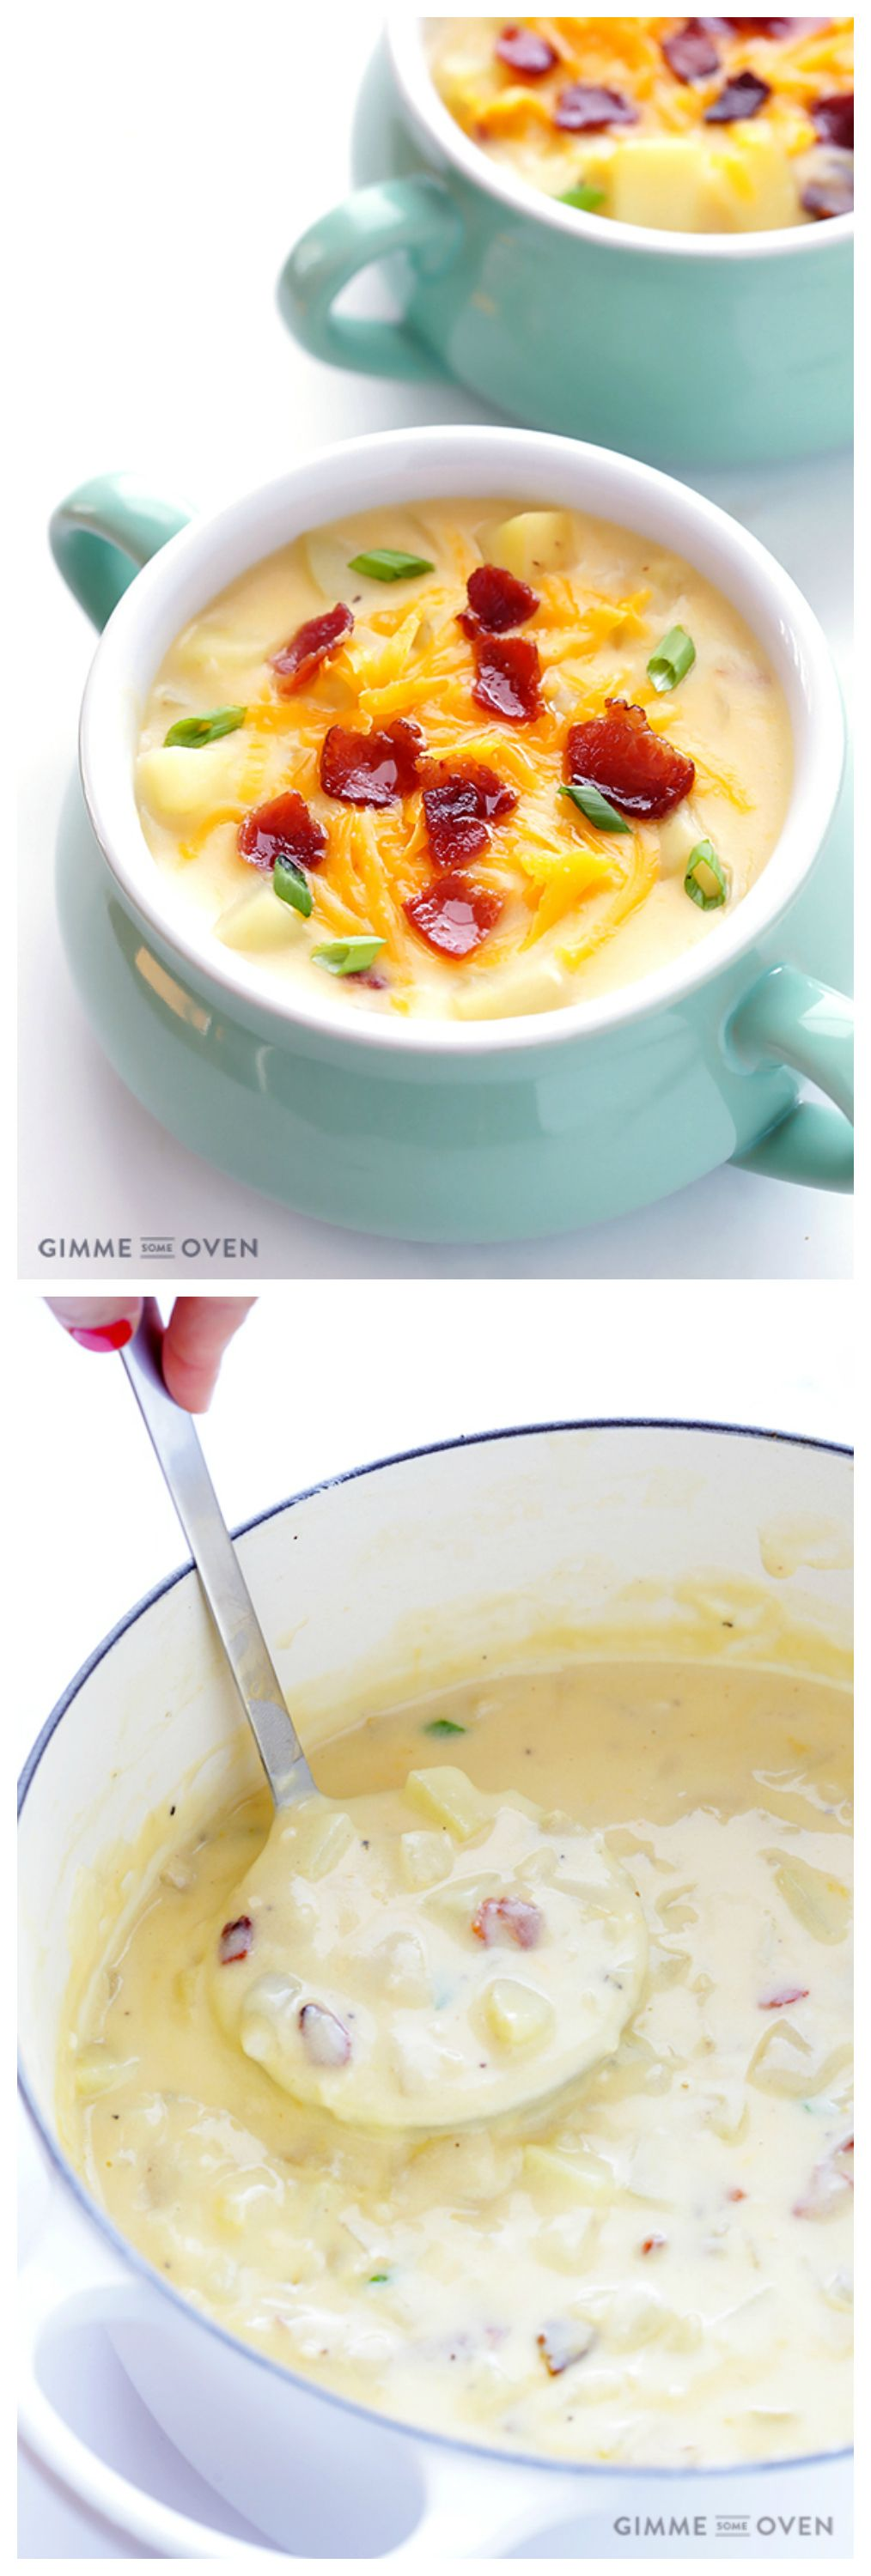 The Best Potato Soup Gimme Some Oven Recipe Recipes Food Cooking Recipes